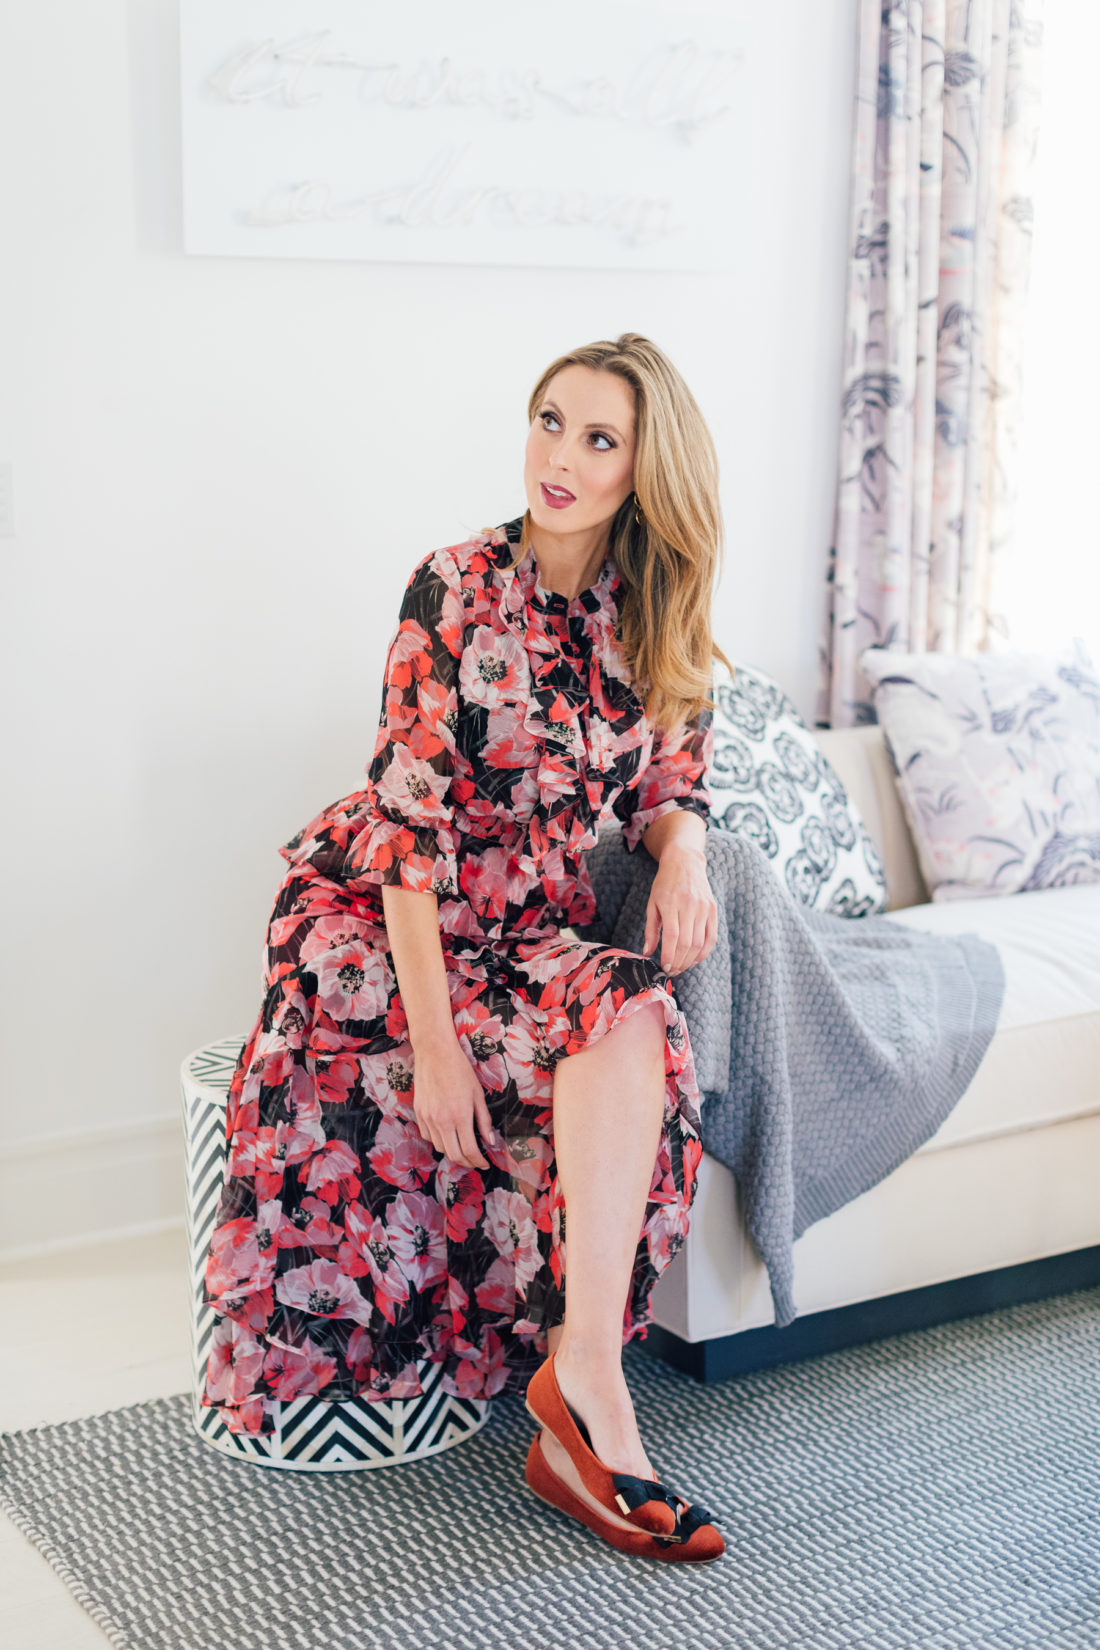 Eva Amurri Martino wears a gorgeous Misa Alanis dress from Verishop